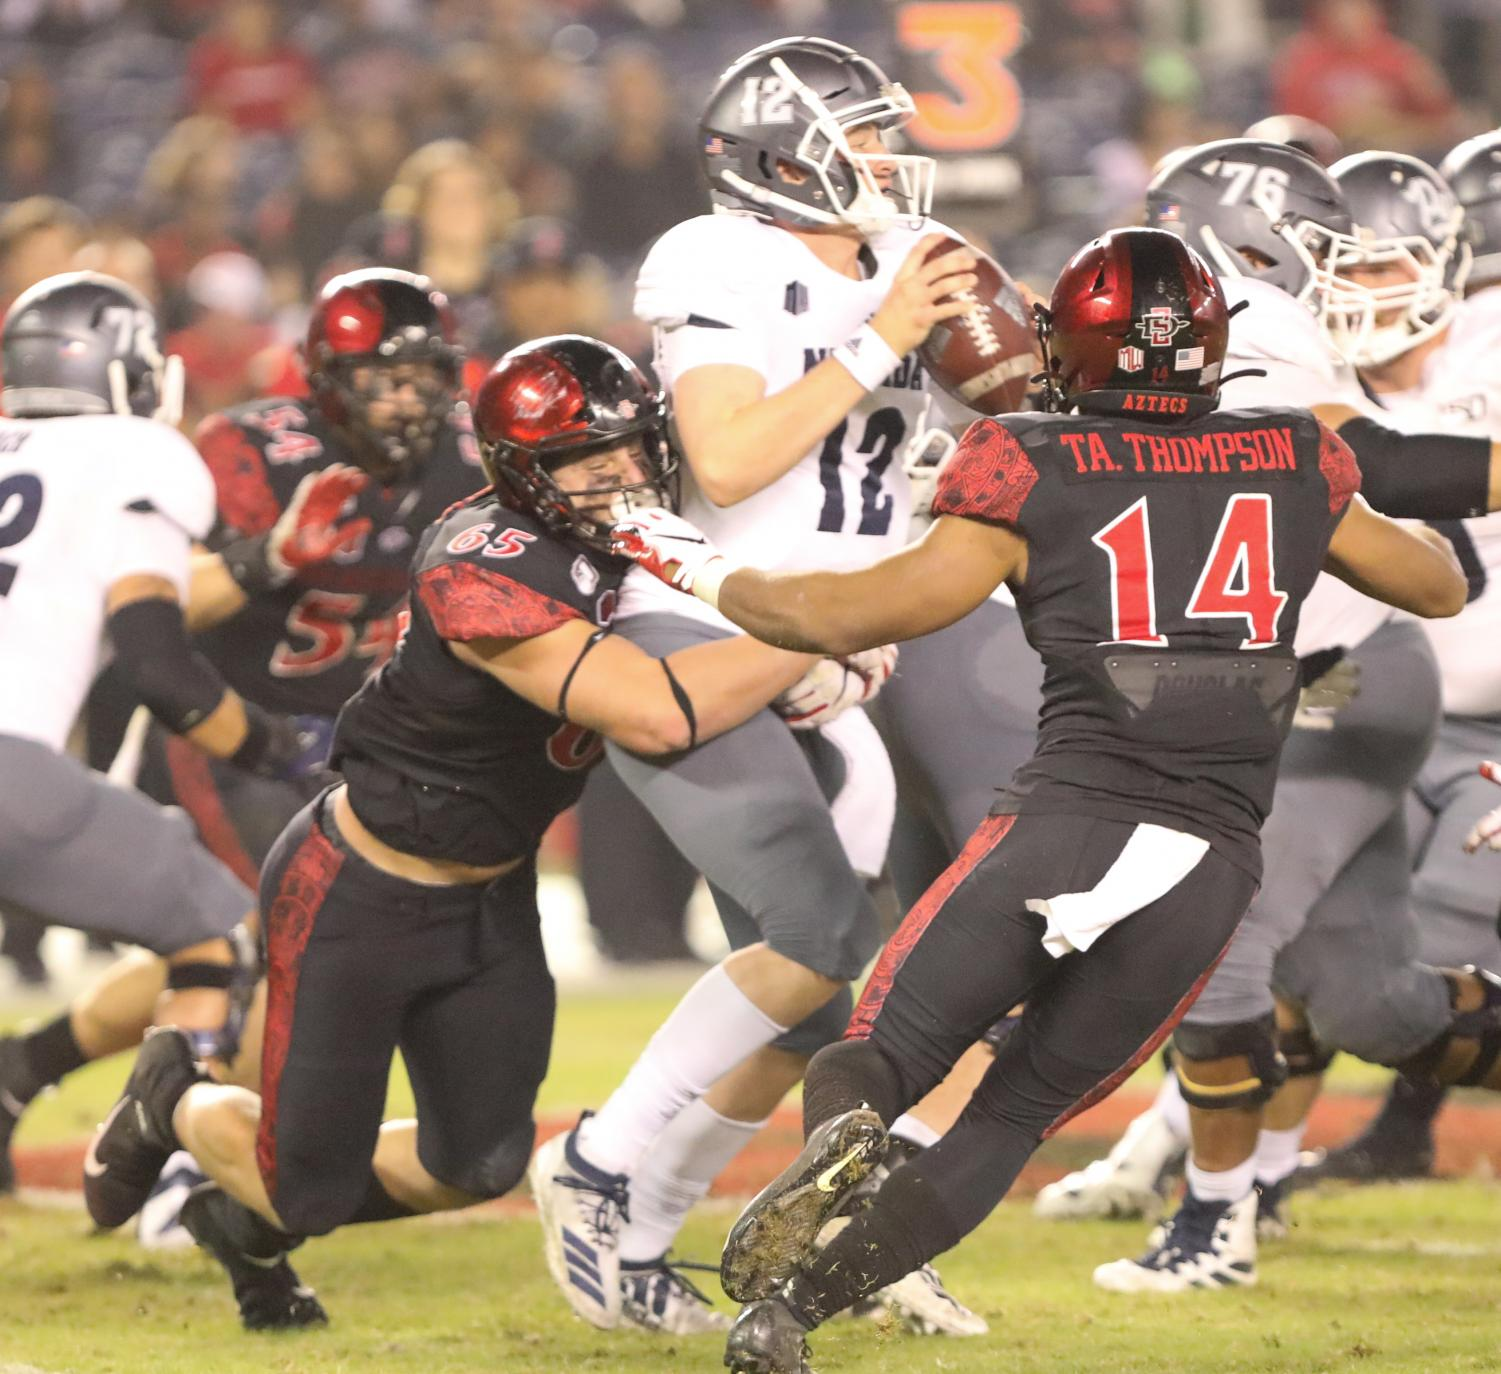 Redshirt freshman defensive lineman (65) takes down Nevada redshirt freshman quarterback Carson Strong during the Aztecs' 17-13 loss to the Wolf Pack on Nov. 9 at SDCCU Stadium.